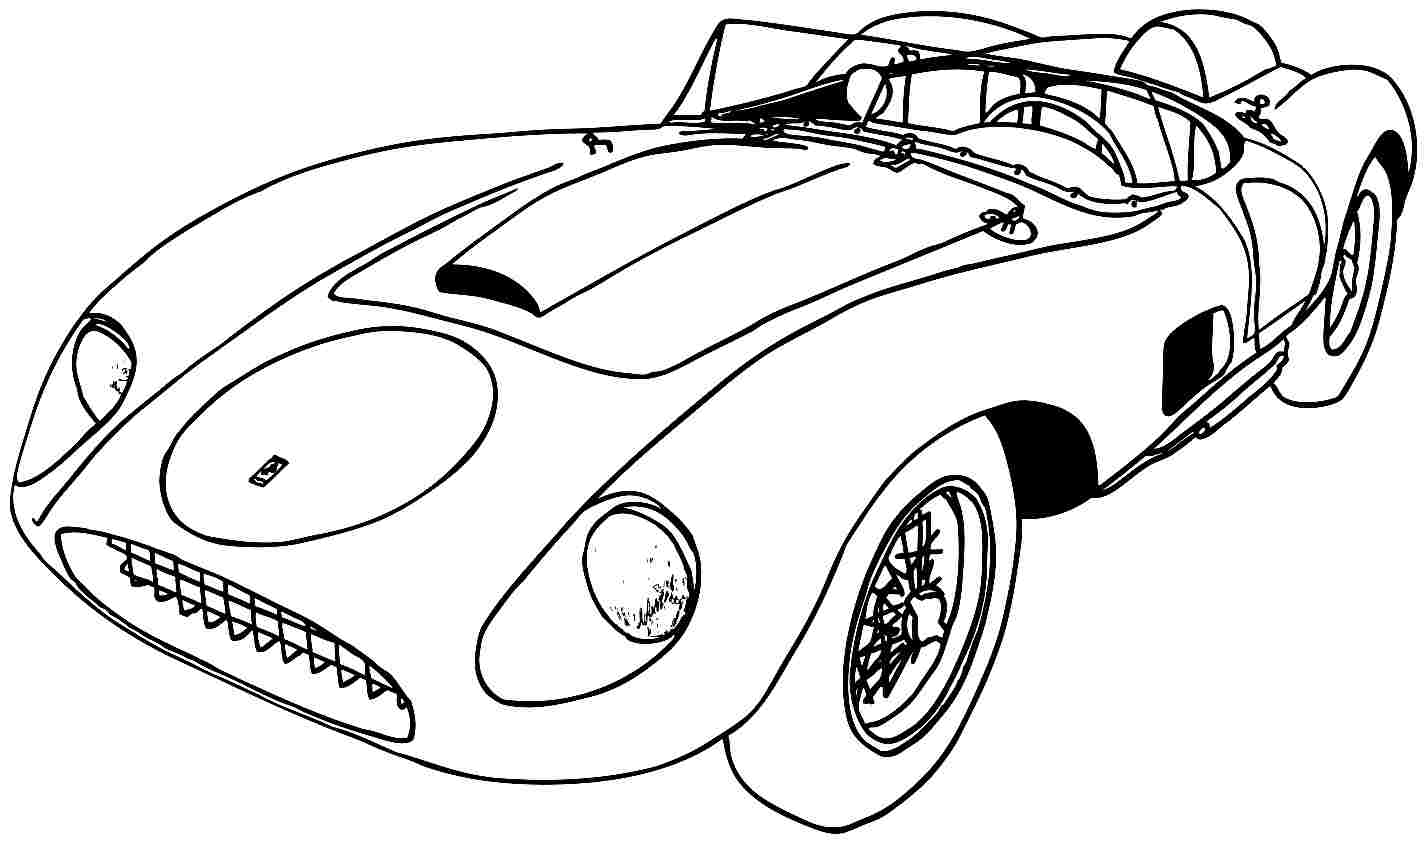 The Best Free Sports Car Drawing Images Download From